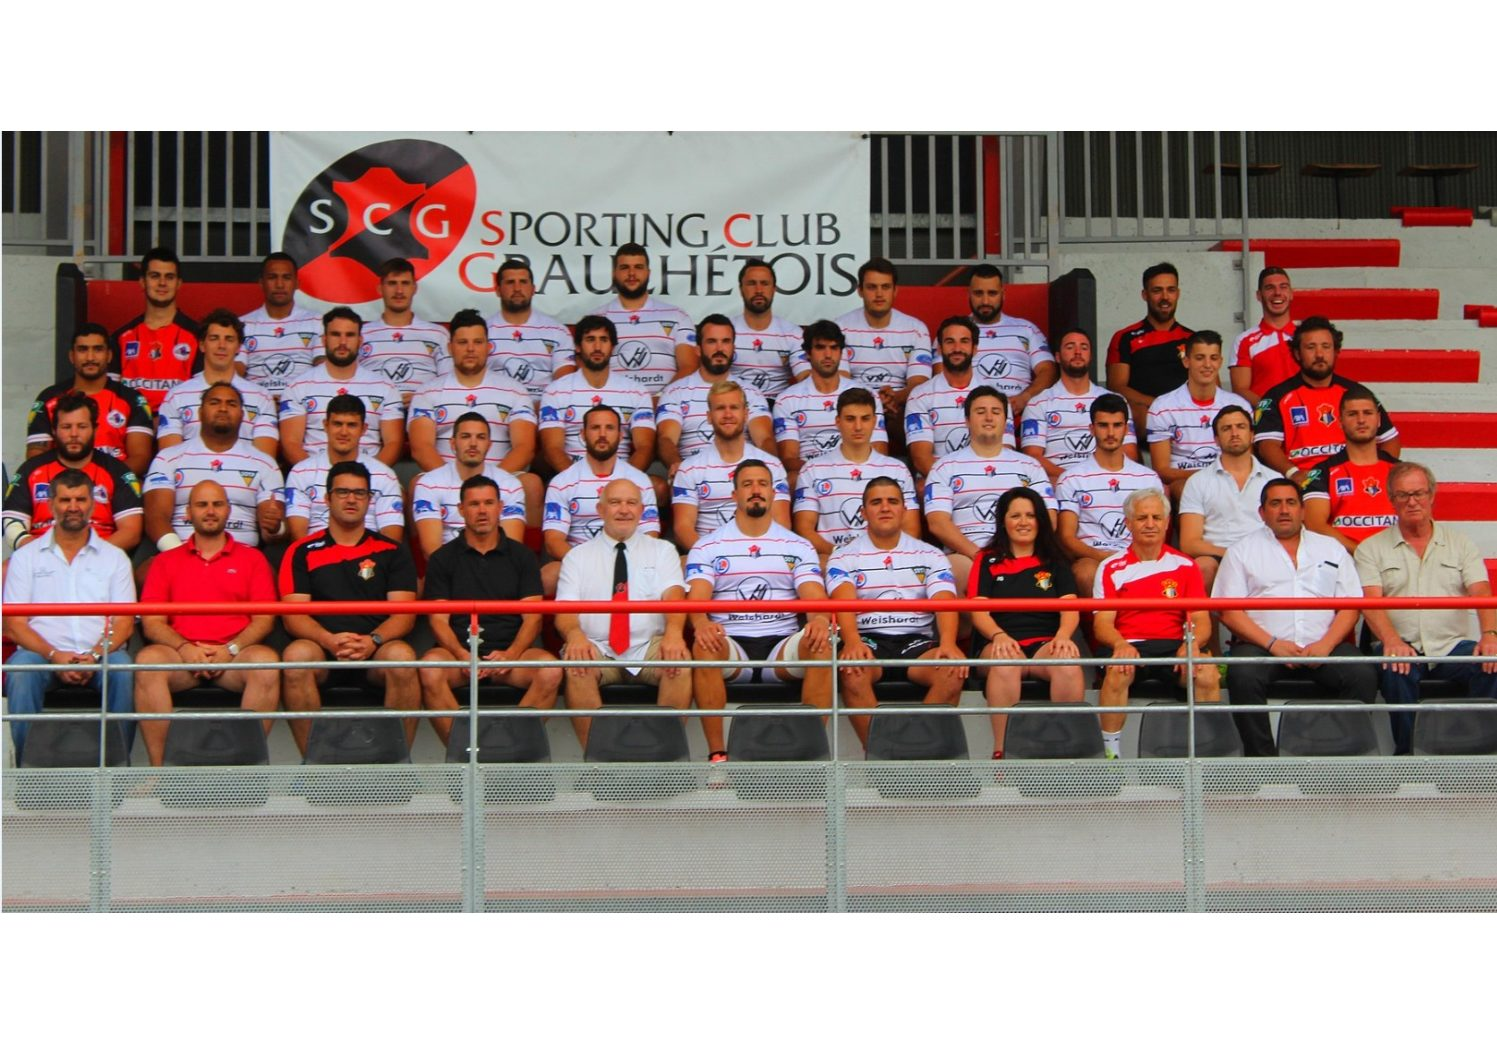 http://scg-rugby.com/wp-content/uploads/2018/04/PHOTO-GROUPE-pdf-2.jpg